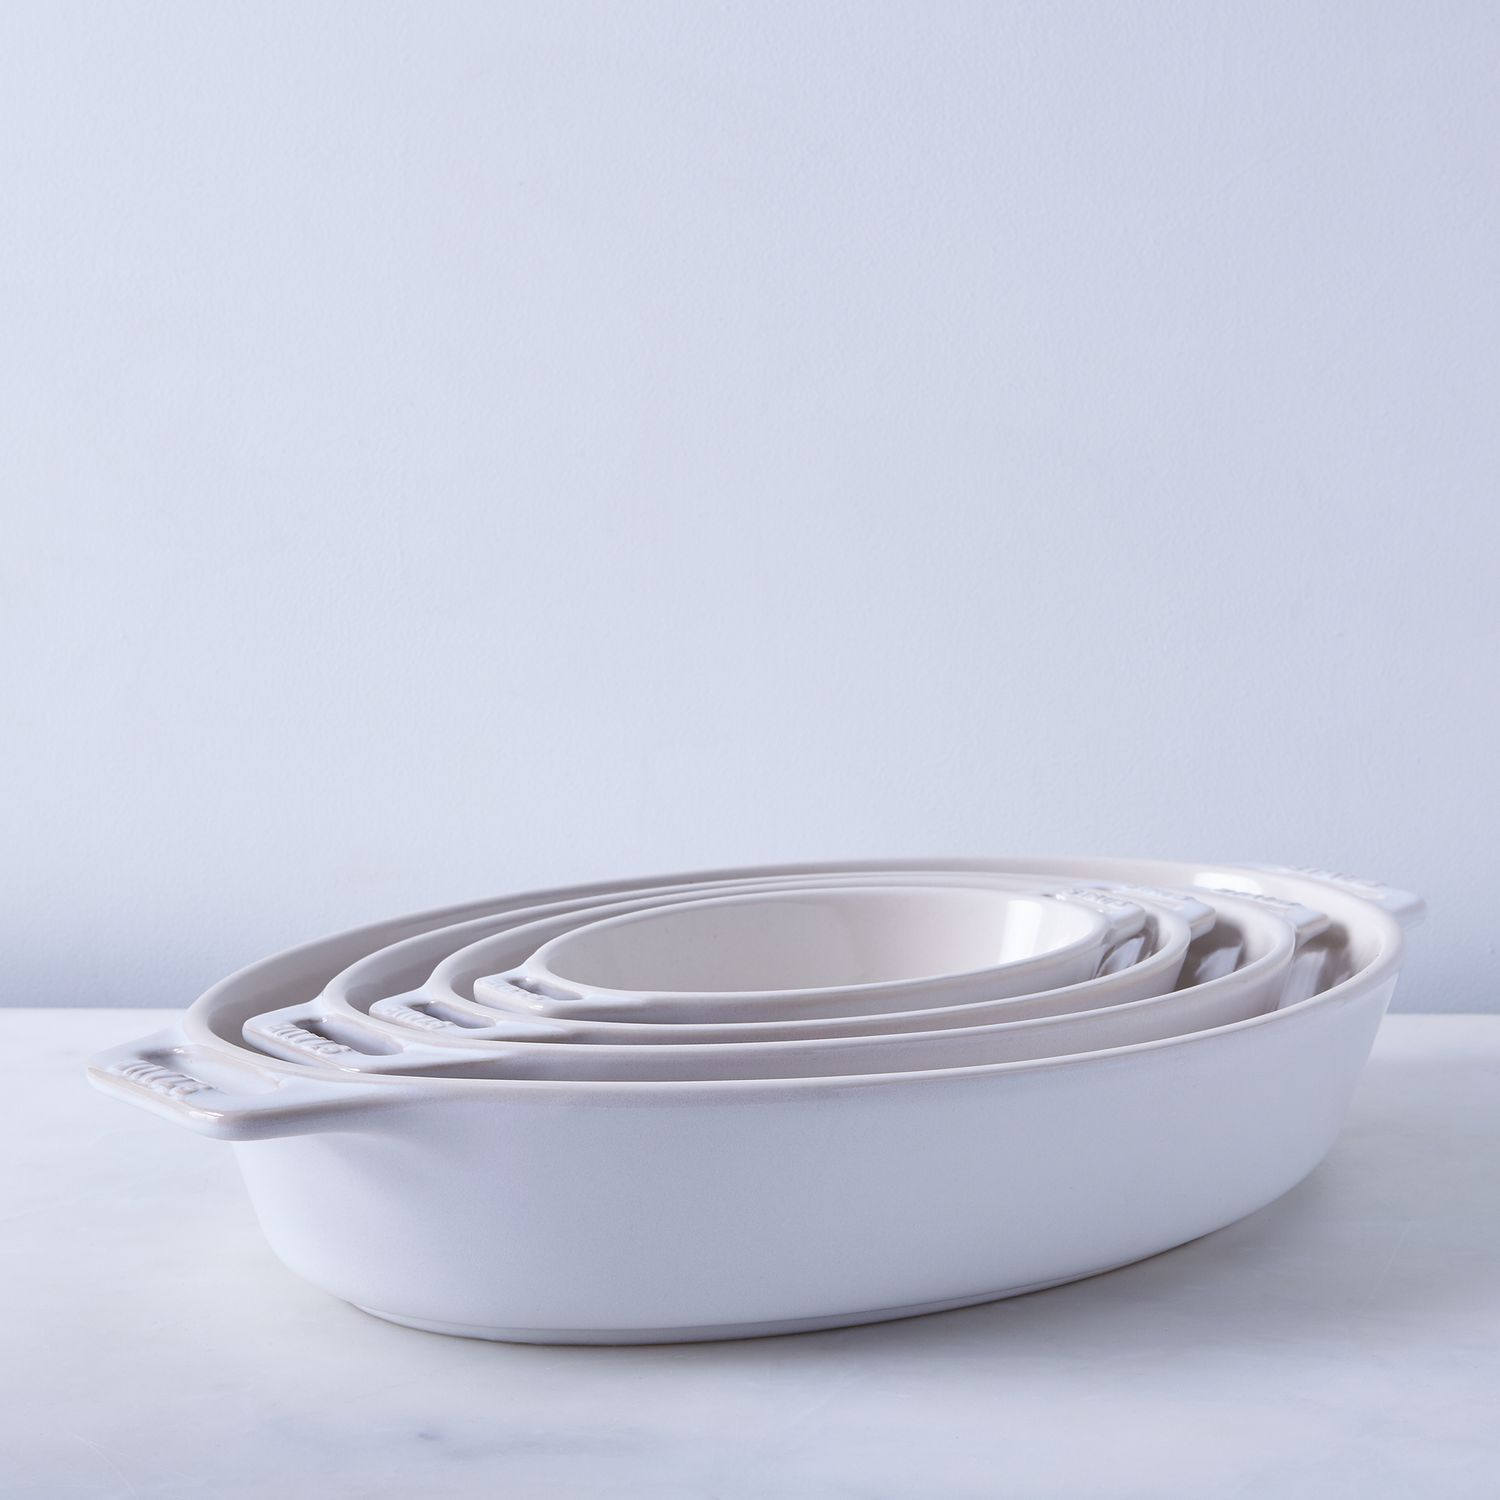 Staub Ivory Rustic Ceramic Oval Baking Dishes On Food52